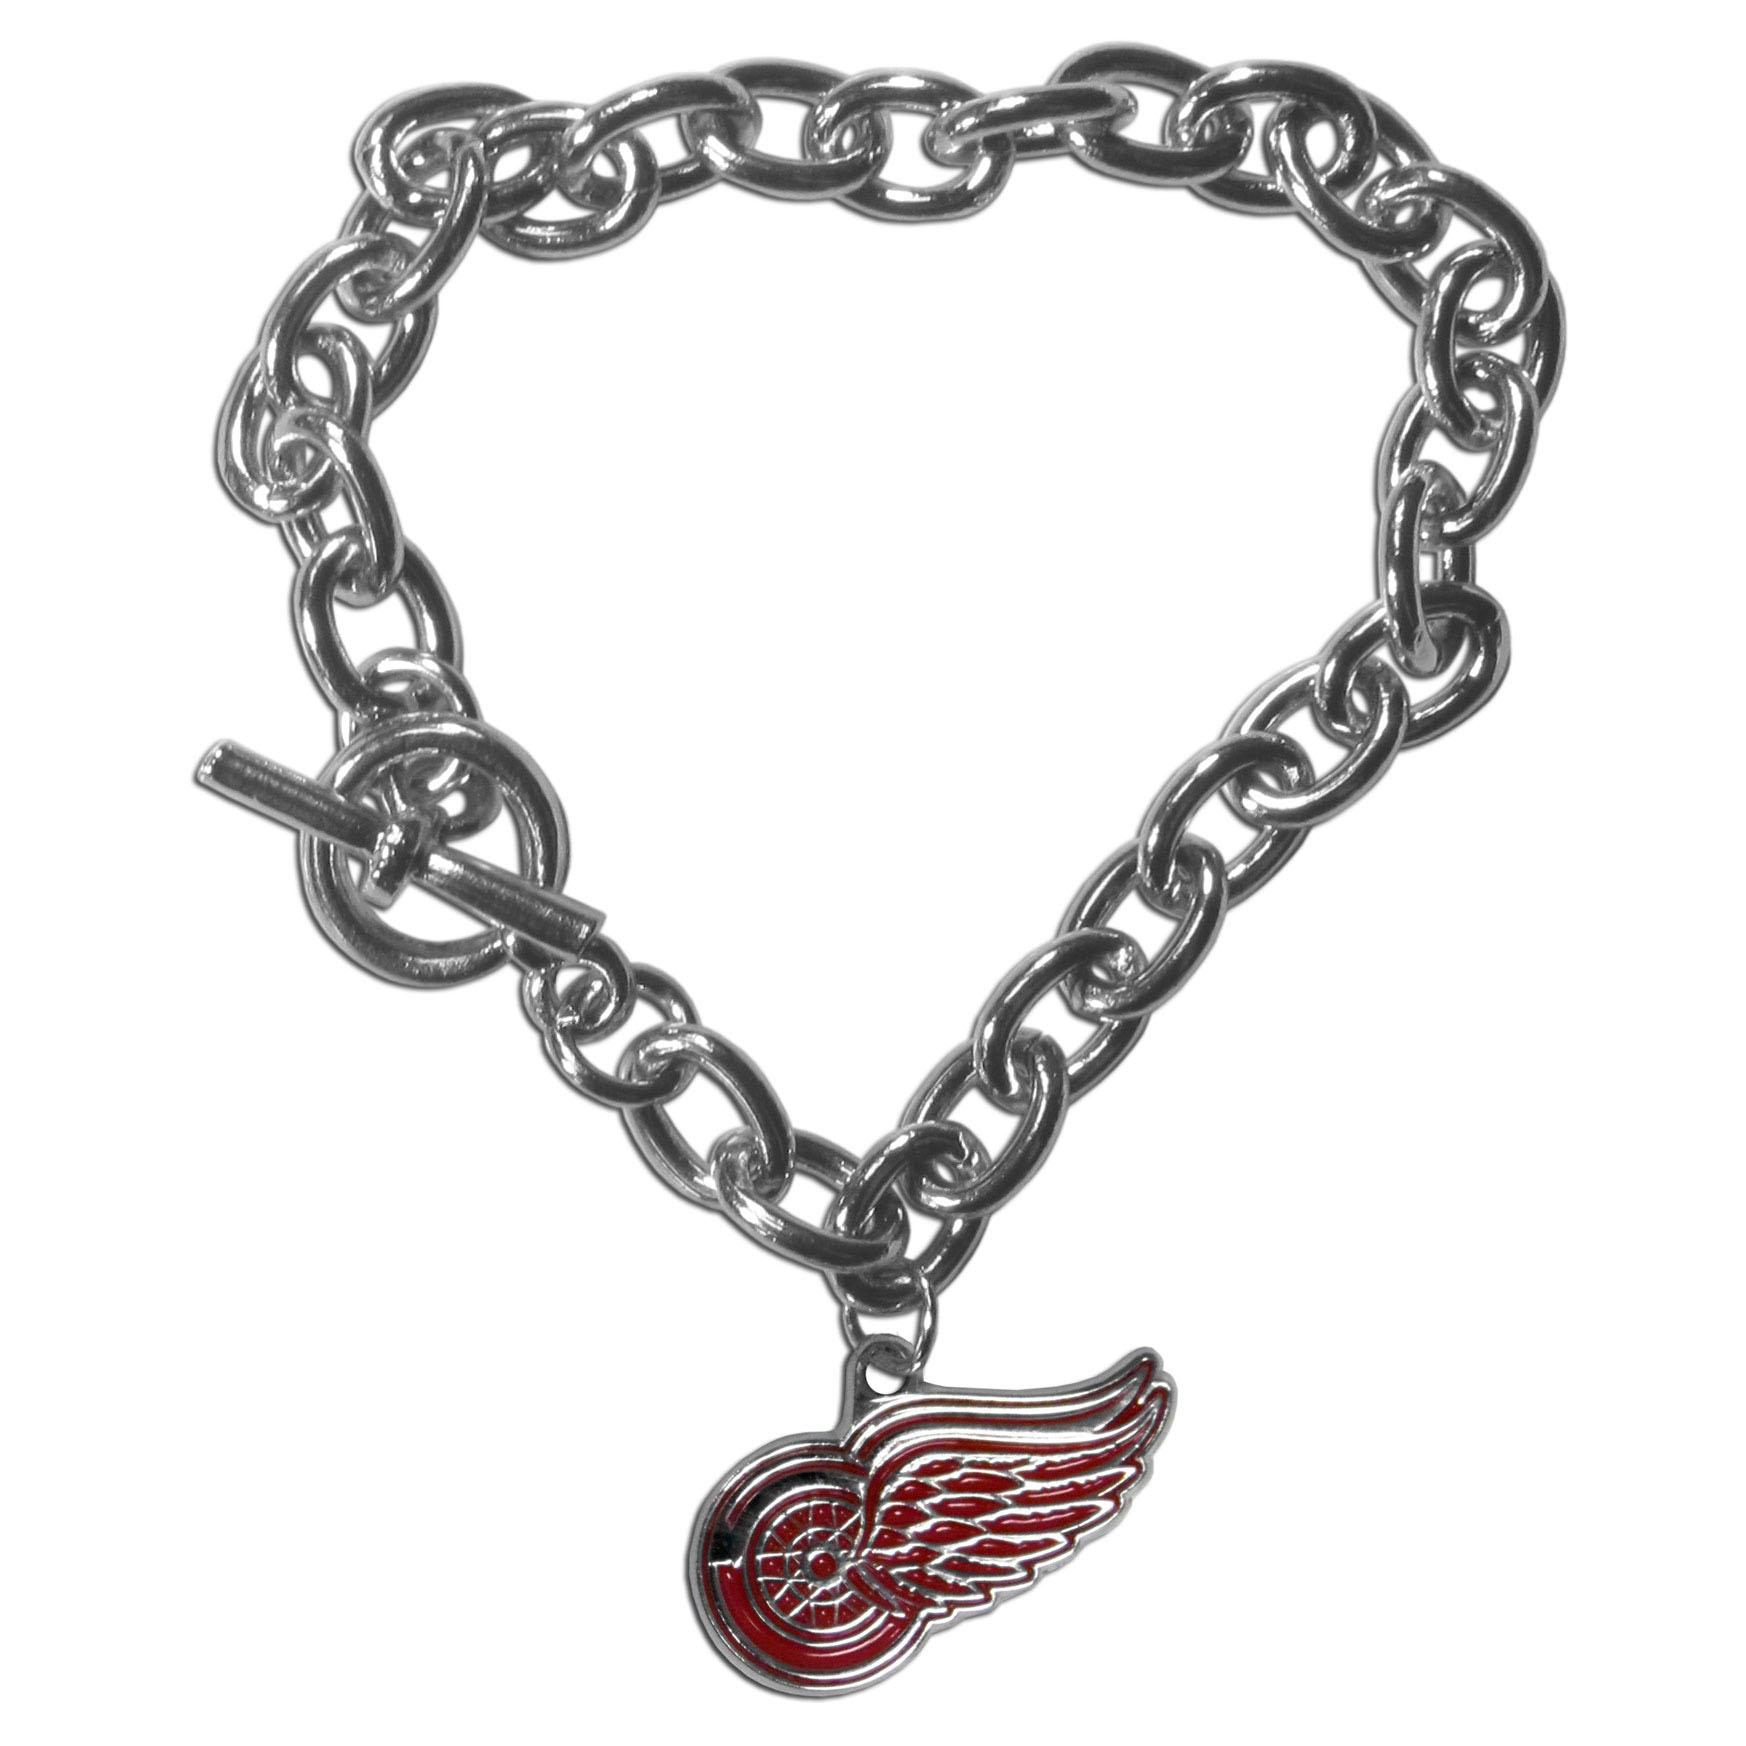 Detroit Red Wings® Charm Chain Bracelet - Our classic single charm bracelet is a great way to show off your team pride! The 7.5 inch large link chain features a high polish Detroit Red Wings® charm and features a toggle clasp which makes it super easy to take on and off.